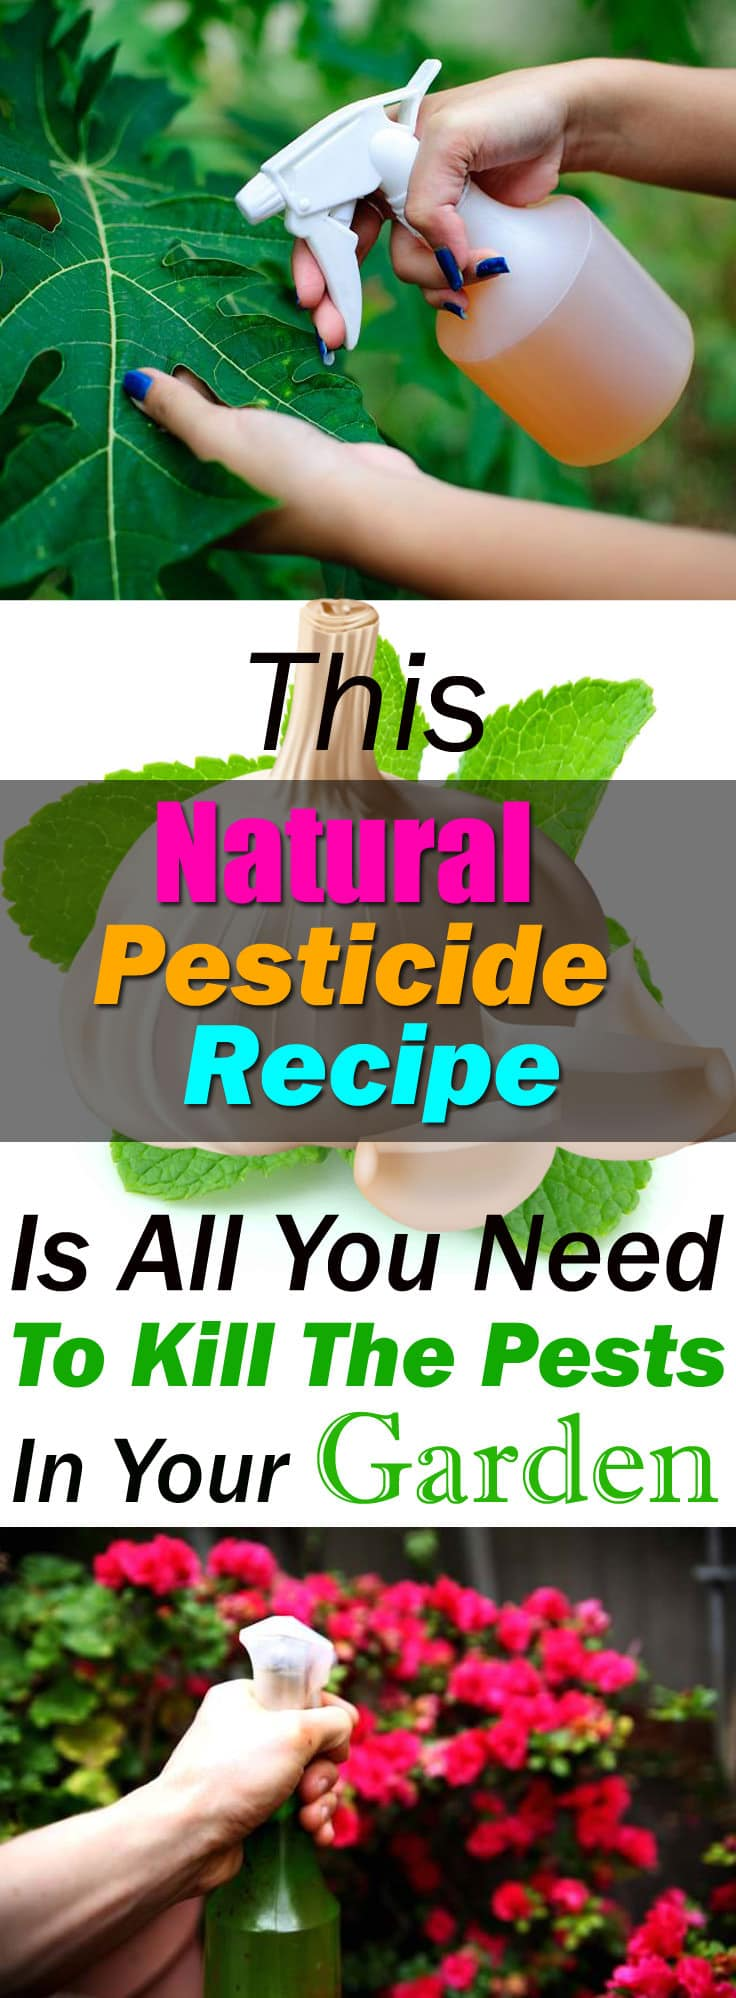 Best Natural Pesticide Recipe